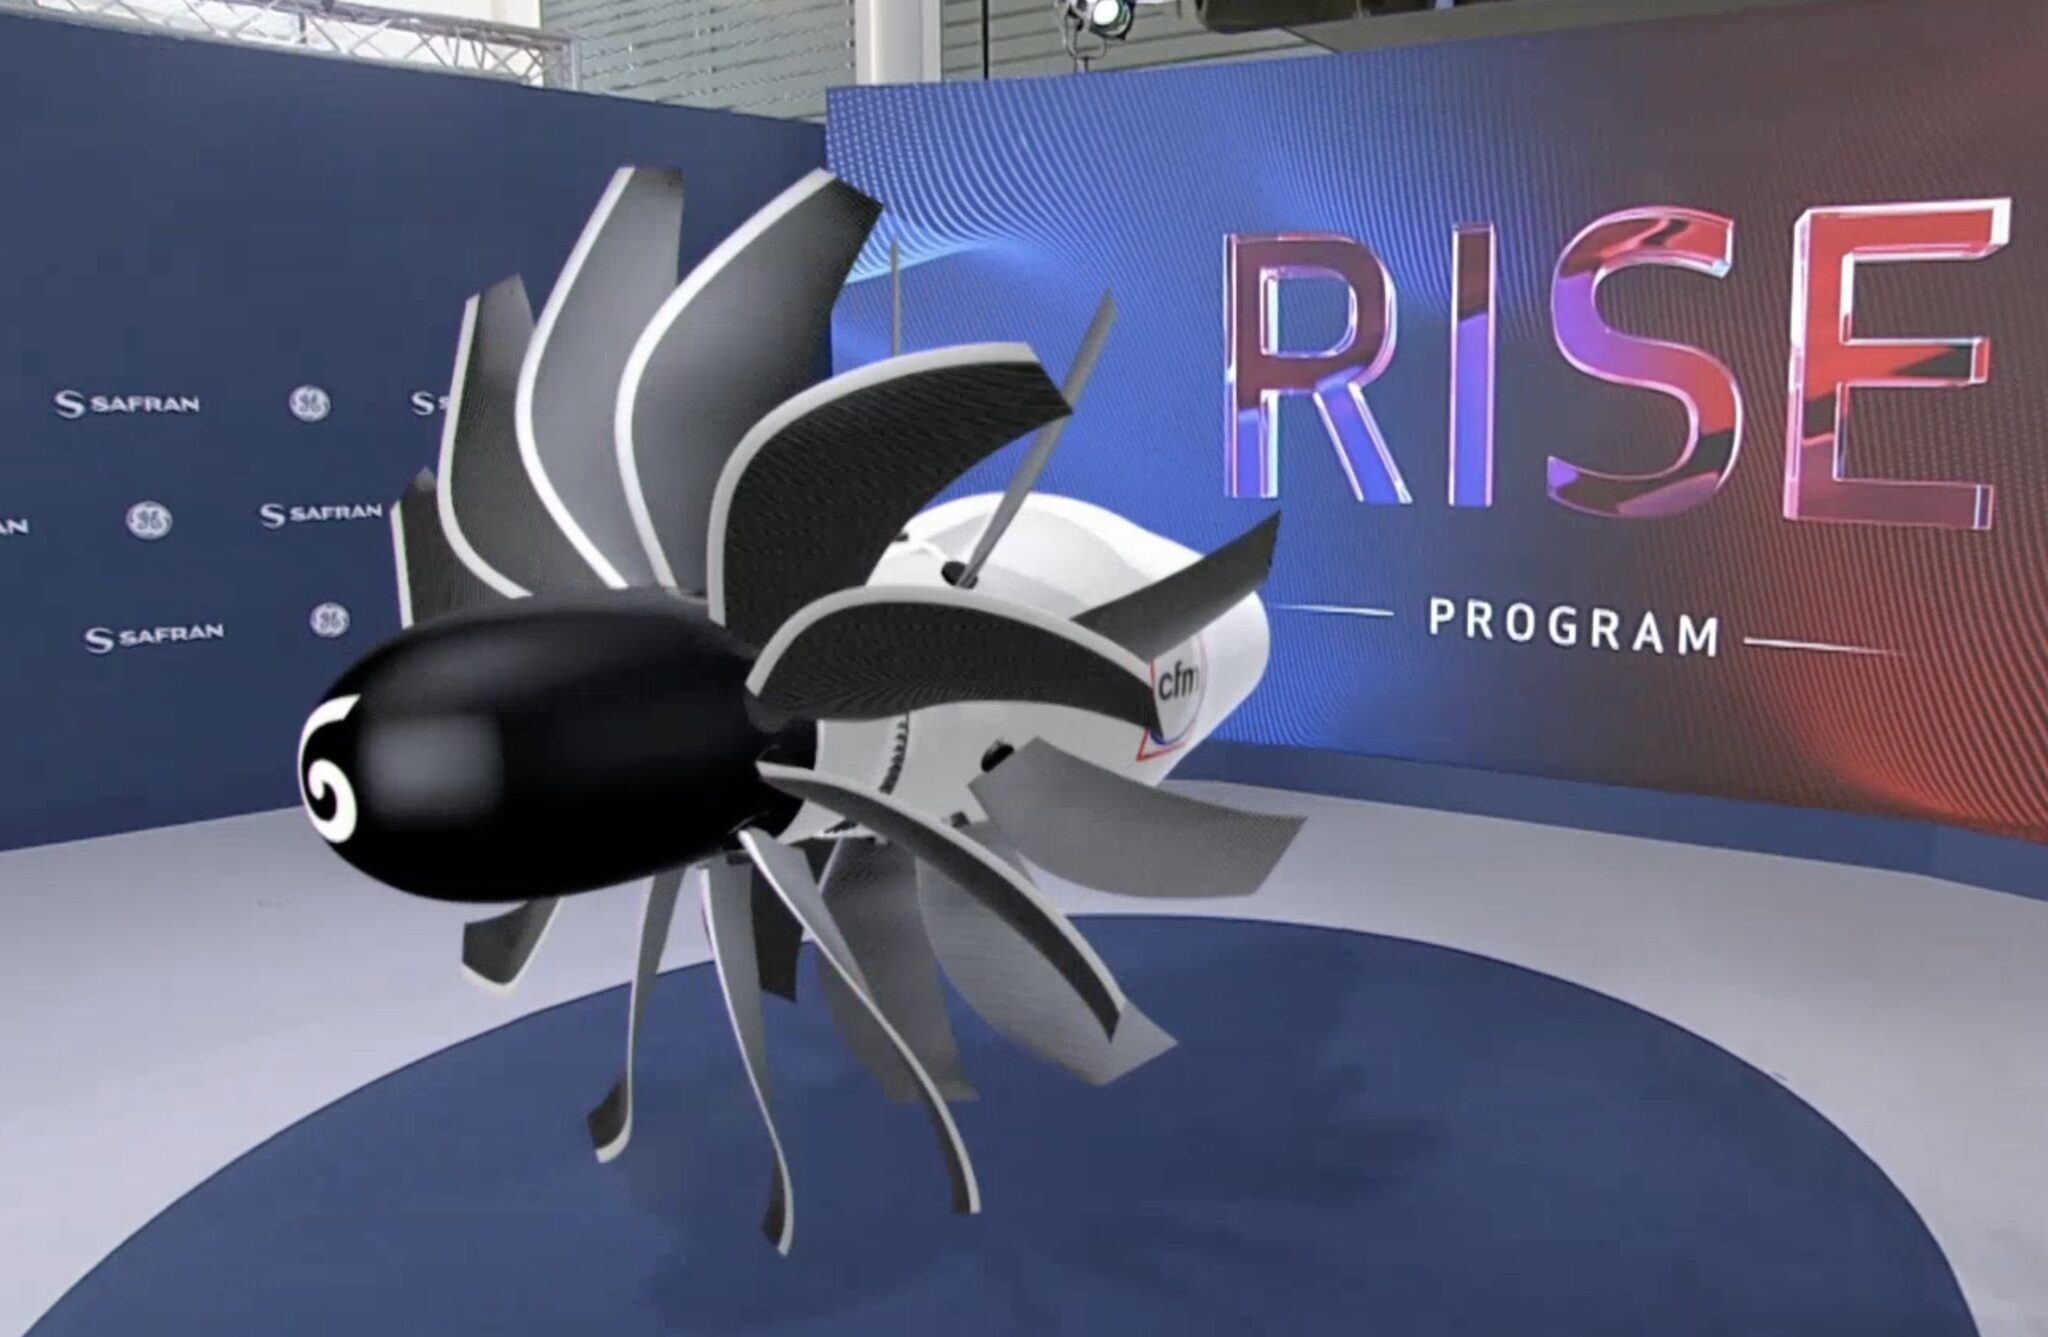 Project of CFM engine with open rotor is aimed to advanced developments of both companies Airbus and Boeing